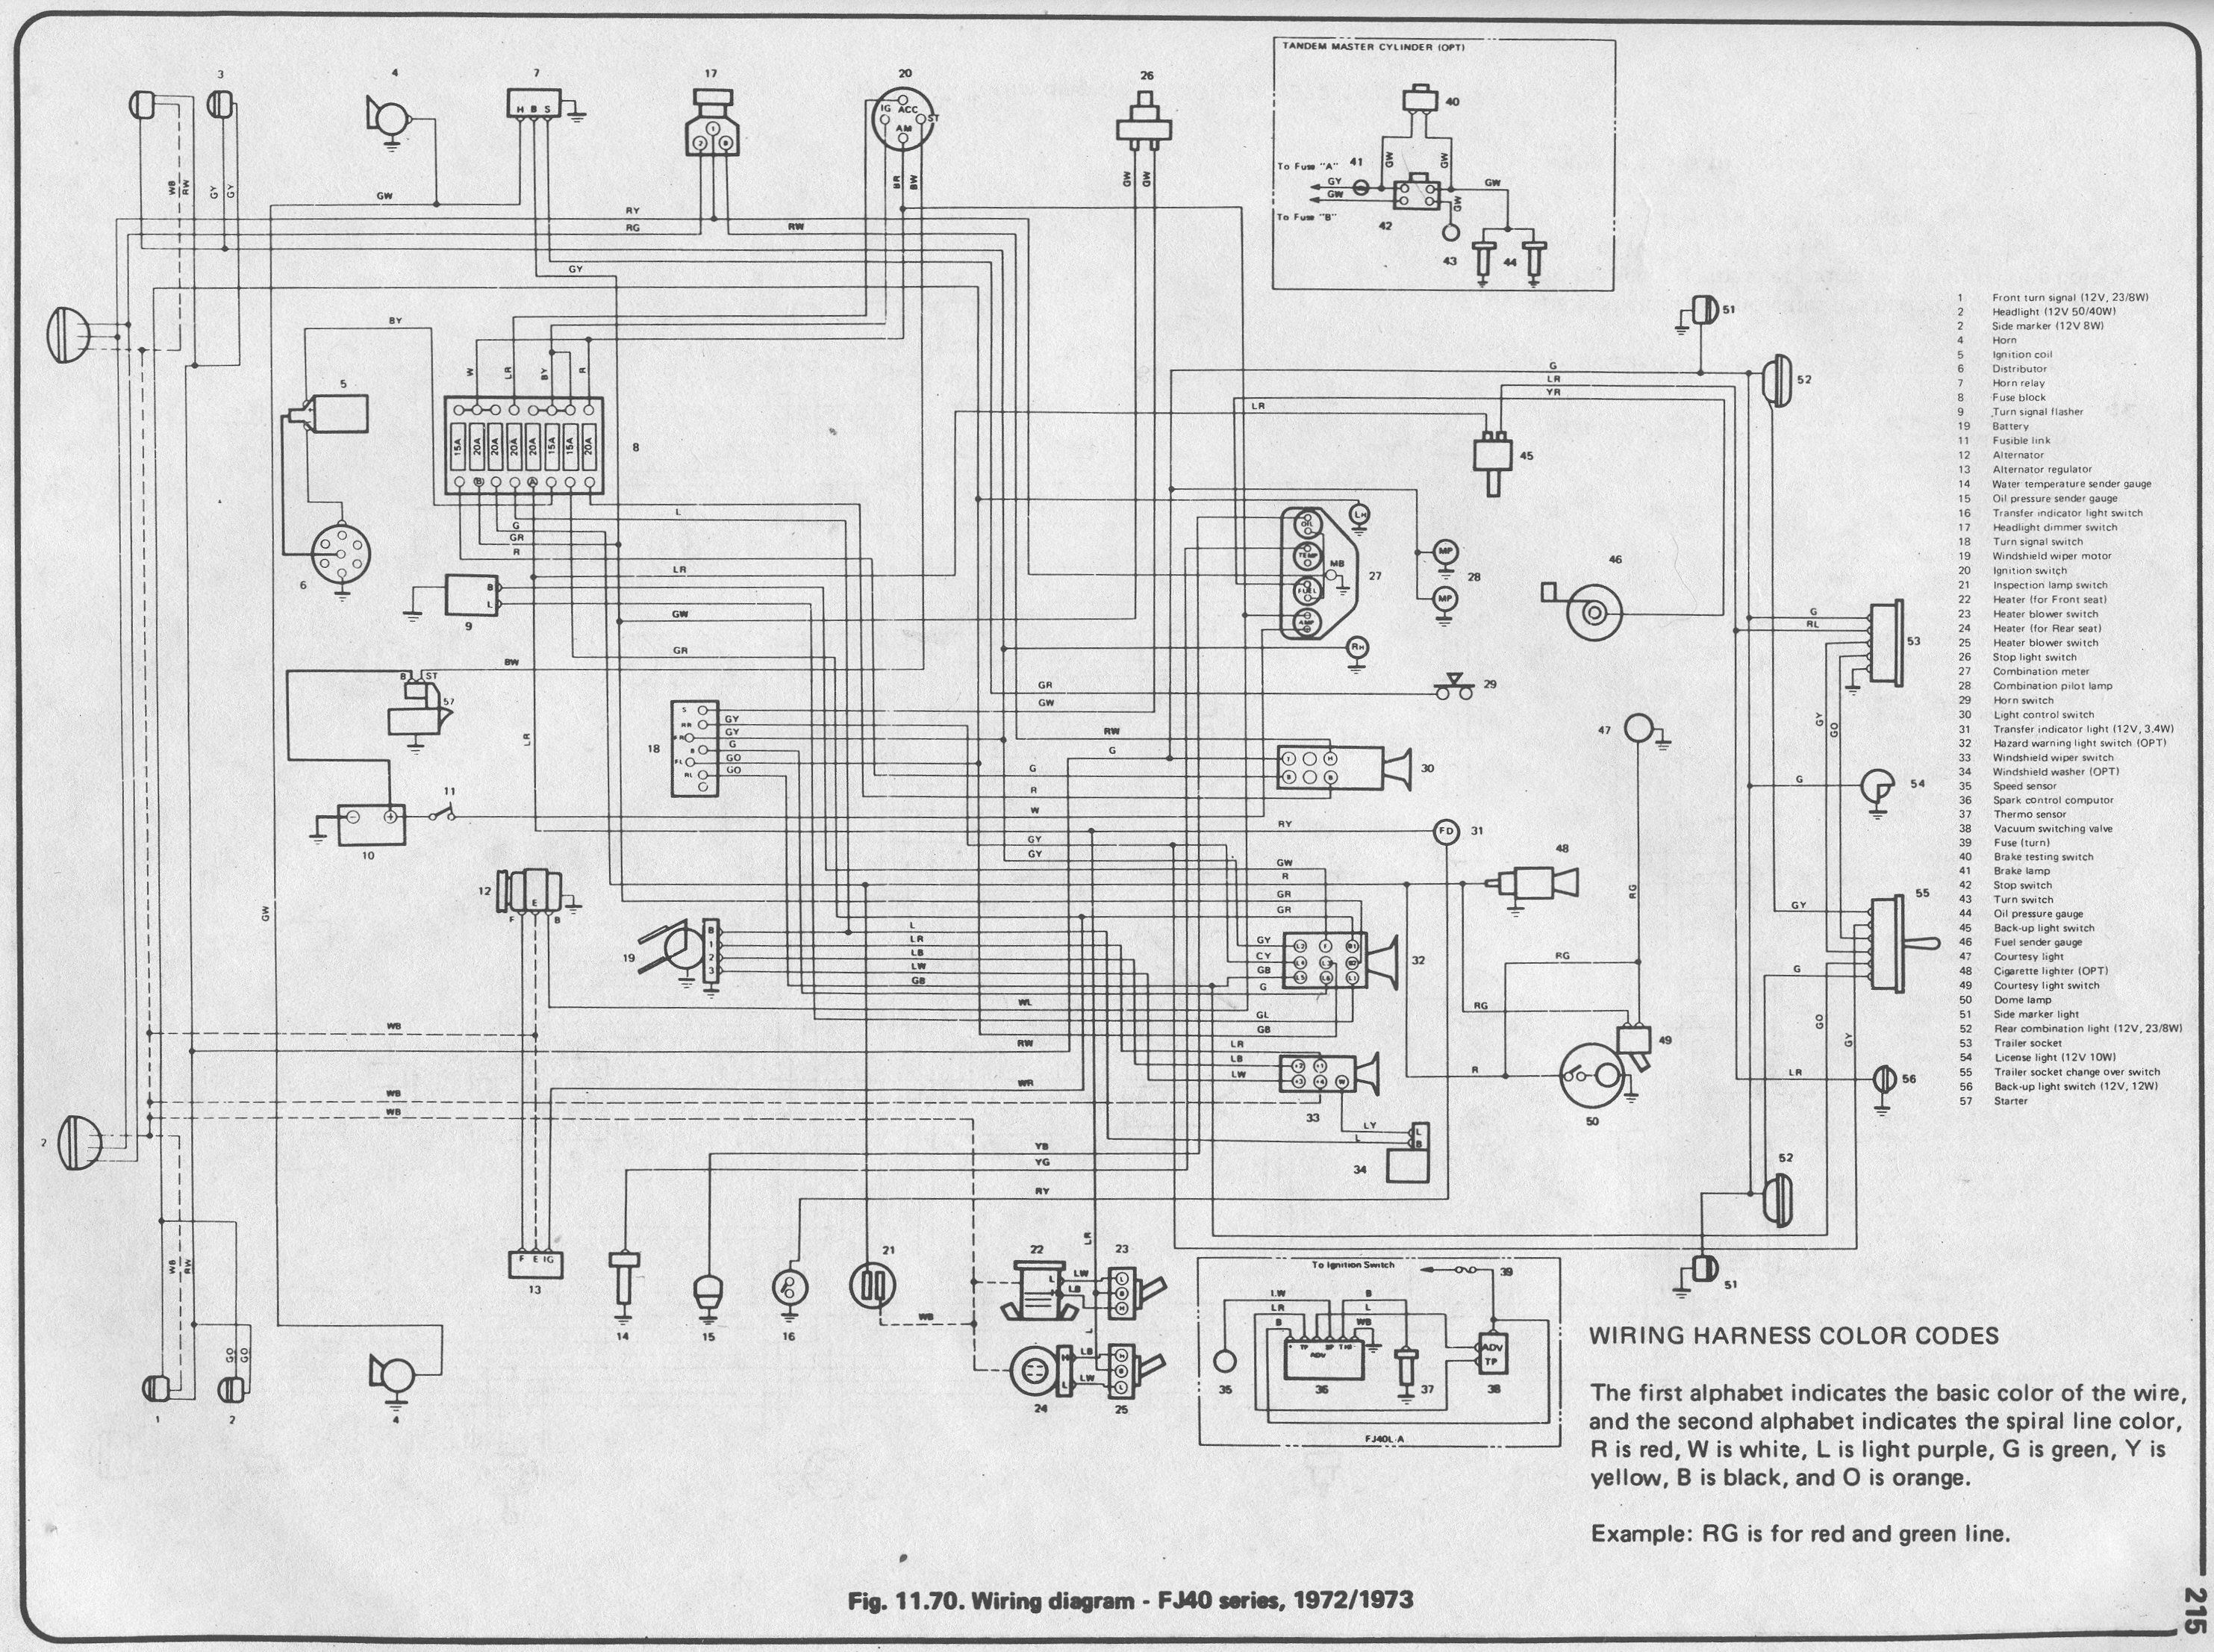 fj 40 wiring diagram wiring diagram1972 fj40 wiring harness wiring diagramtoyota bj40 wiring diagram wiring schematic diagram1972 fj40 wiring harness wiring